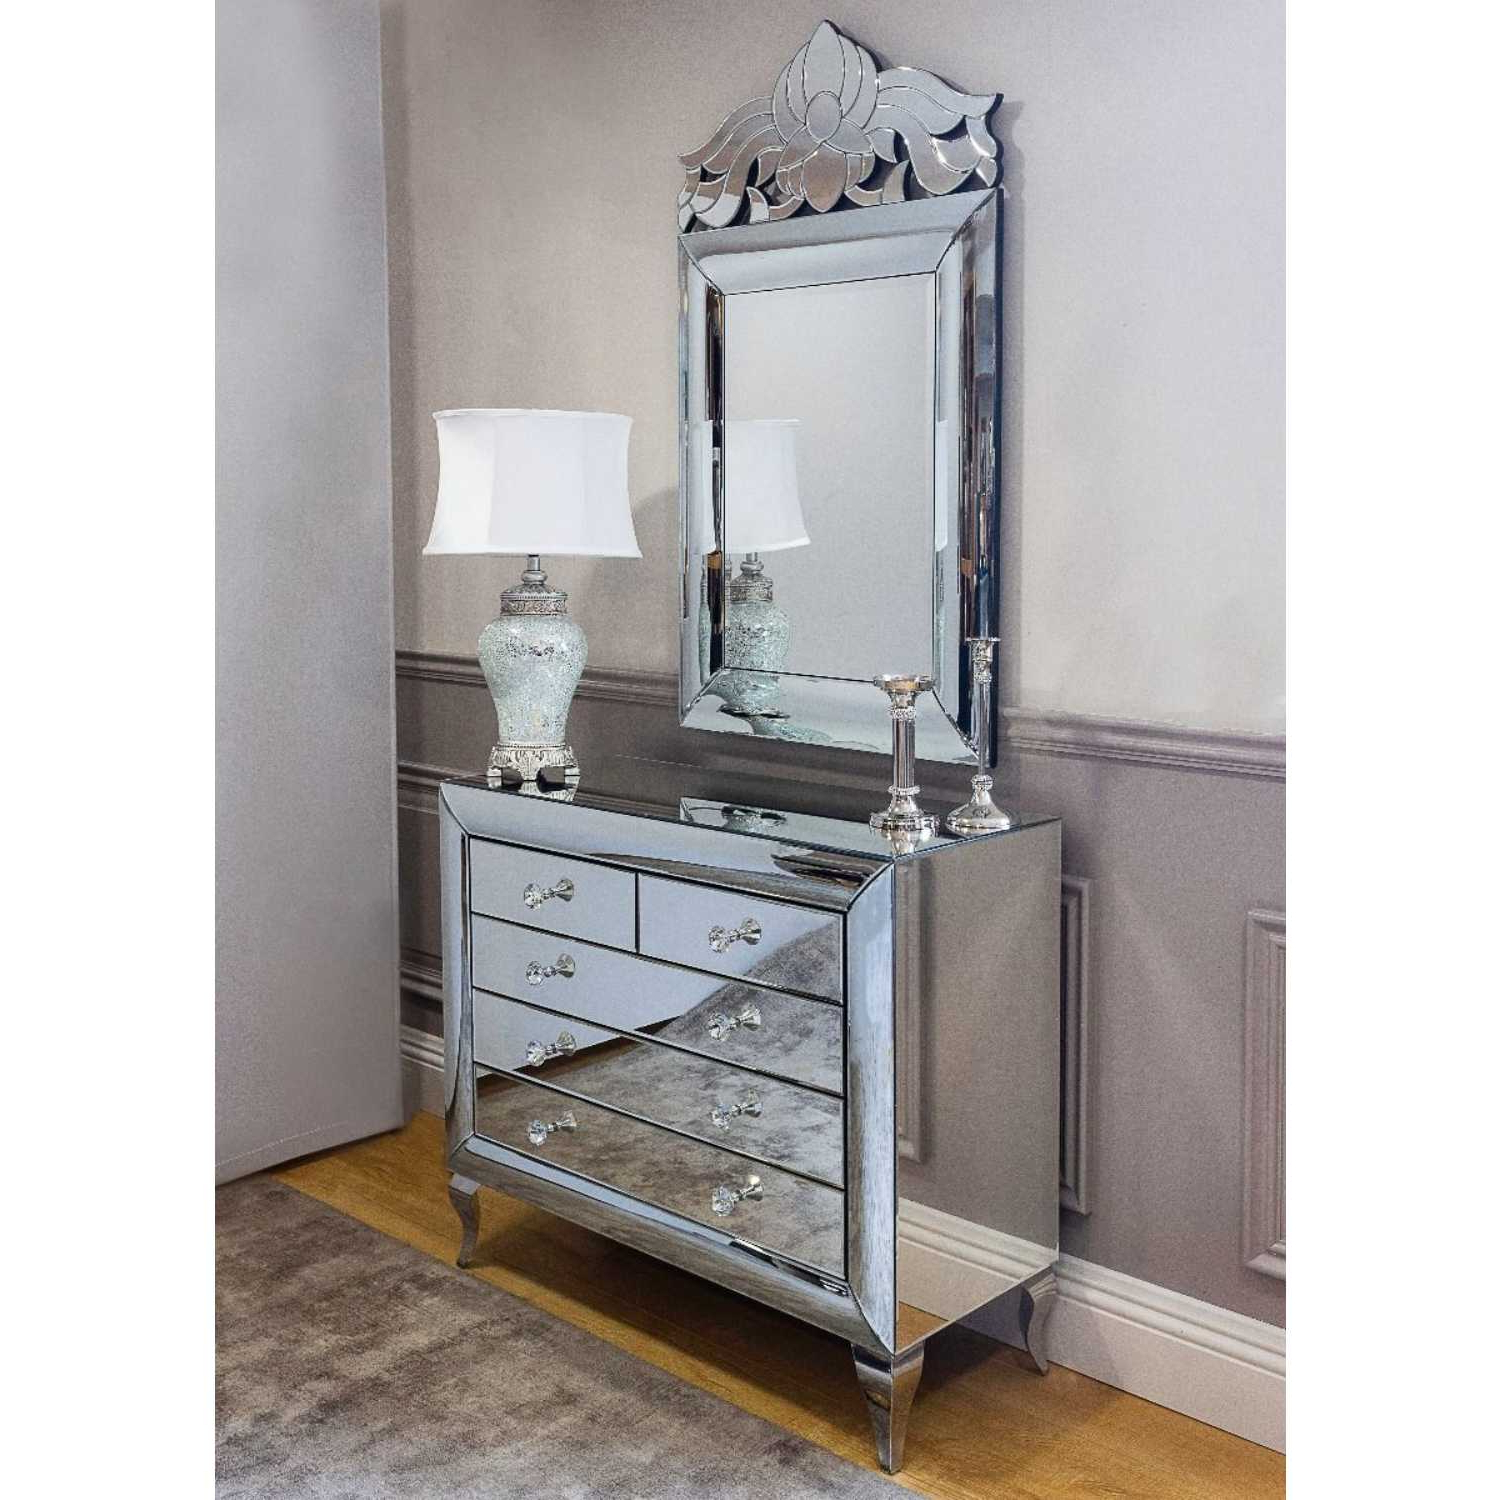 Monroe Mirror Glass Chest Of Drawers And Wall Mirror Set In Favorite Wall Mirrors With Drawers (View 15 of 20)